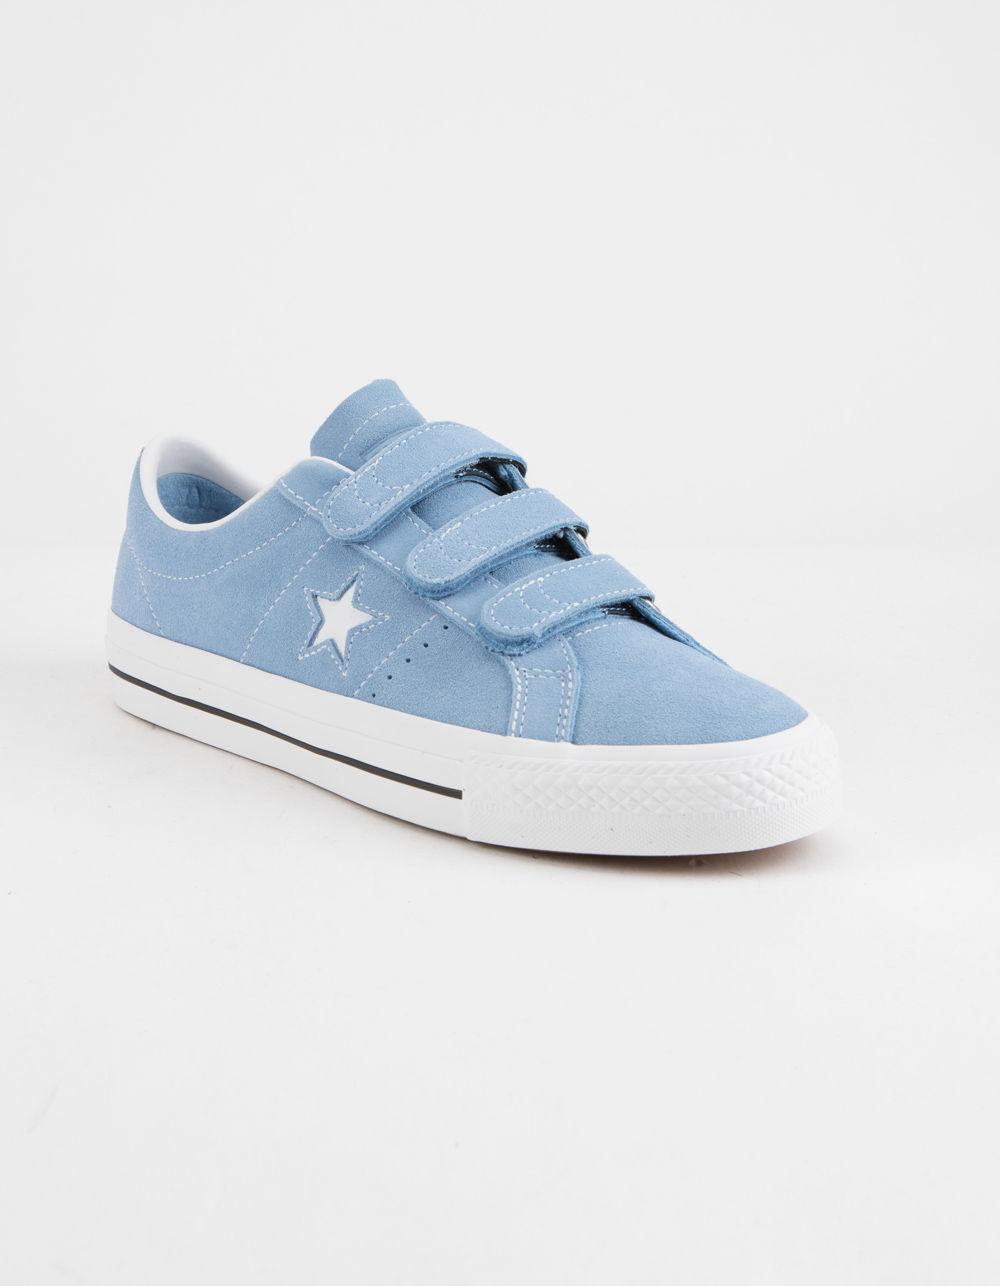 57ab0eebd38 Lyst - Converse One Star Pro 3v Ox Light Blue   White Shoes in Blue for Men